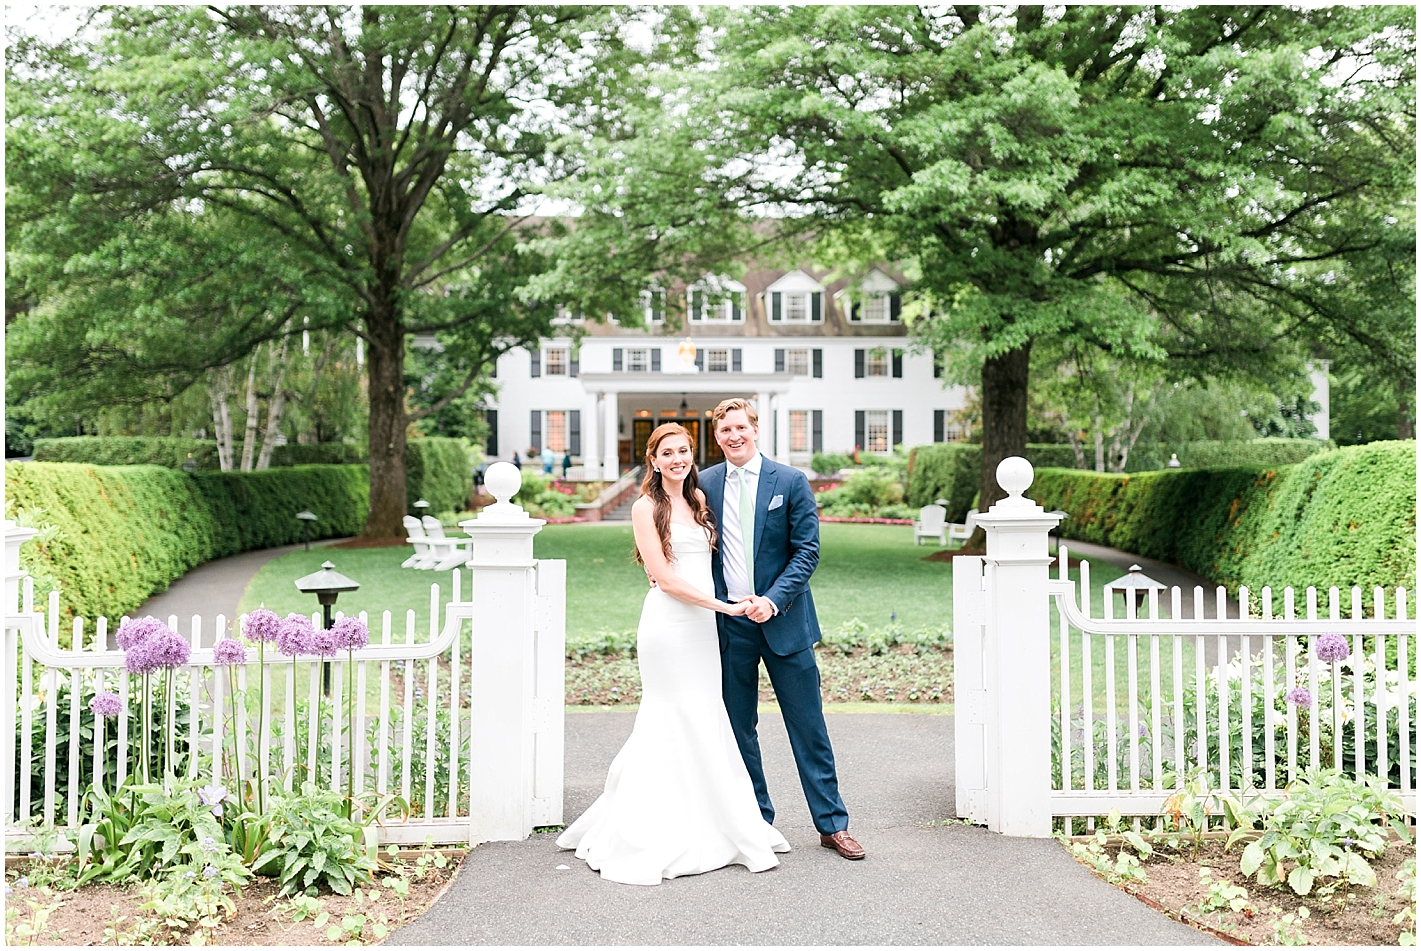 Lowell MA wedding and portrait photographer Alyssa Parker Photography